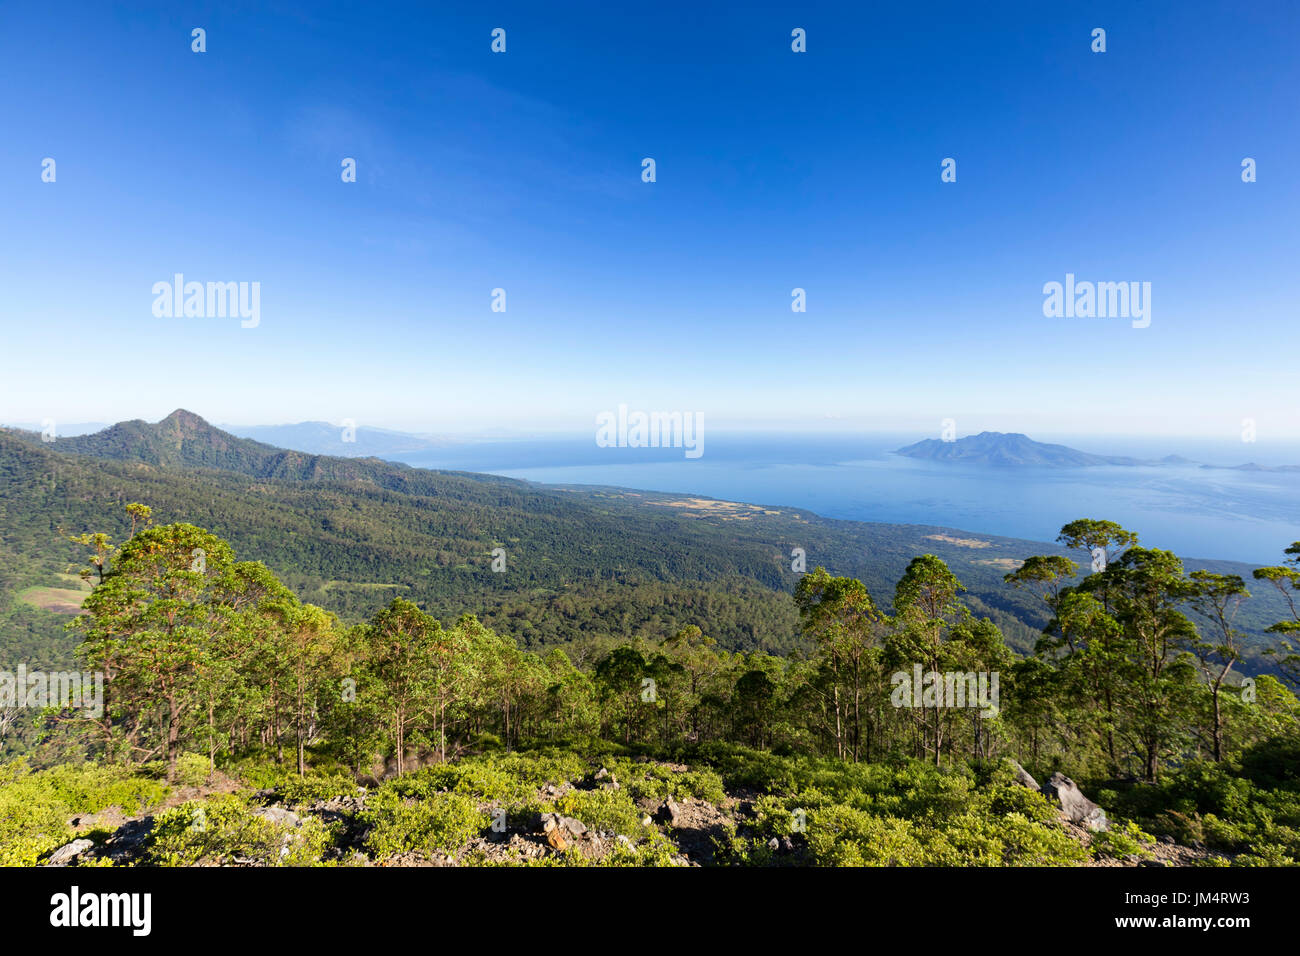 View of the edge of the treeline before low lying scrubs take on the side of Mount Egon, a stratovolcano, in Flores, Indonesia. - Stock Image